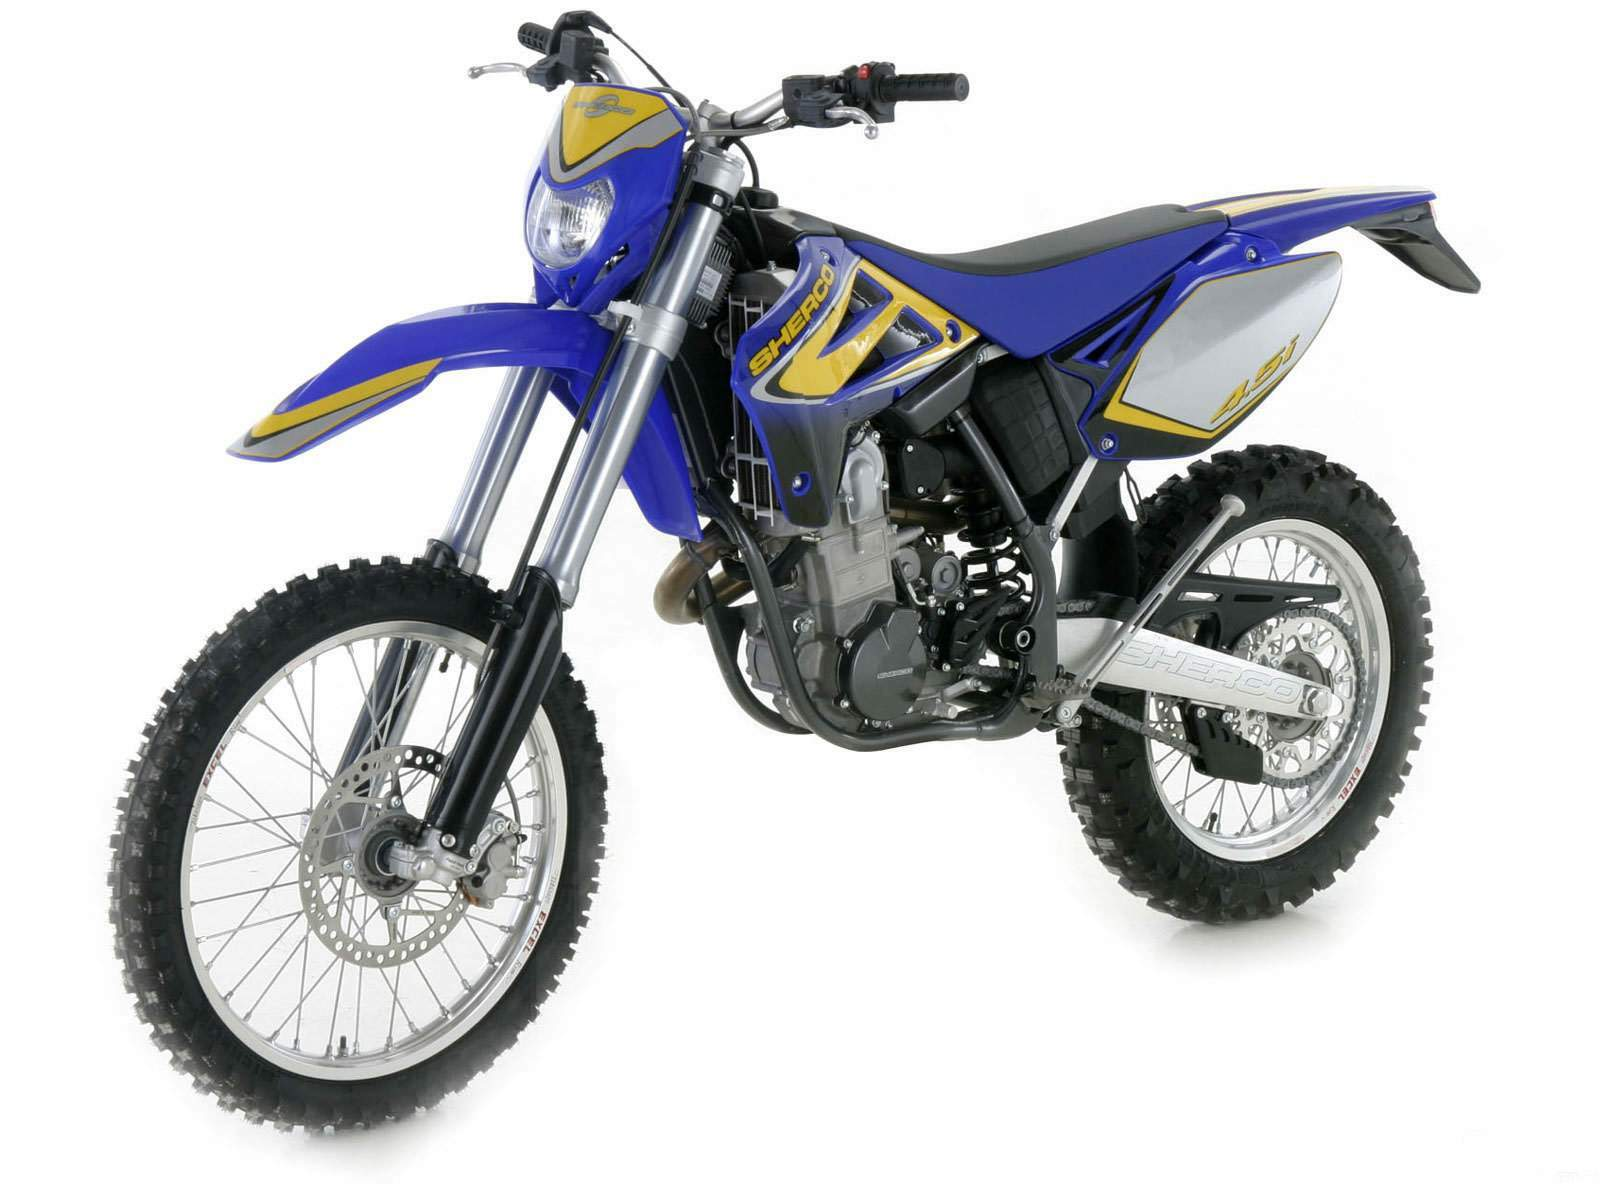 Мотоцикл Sherco Shark Replica 125 Enduro 2005